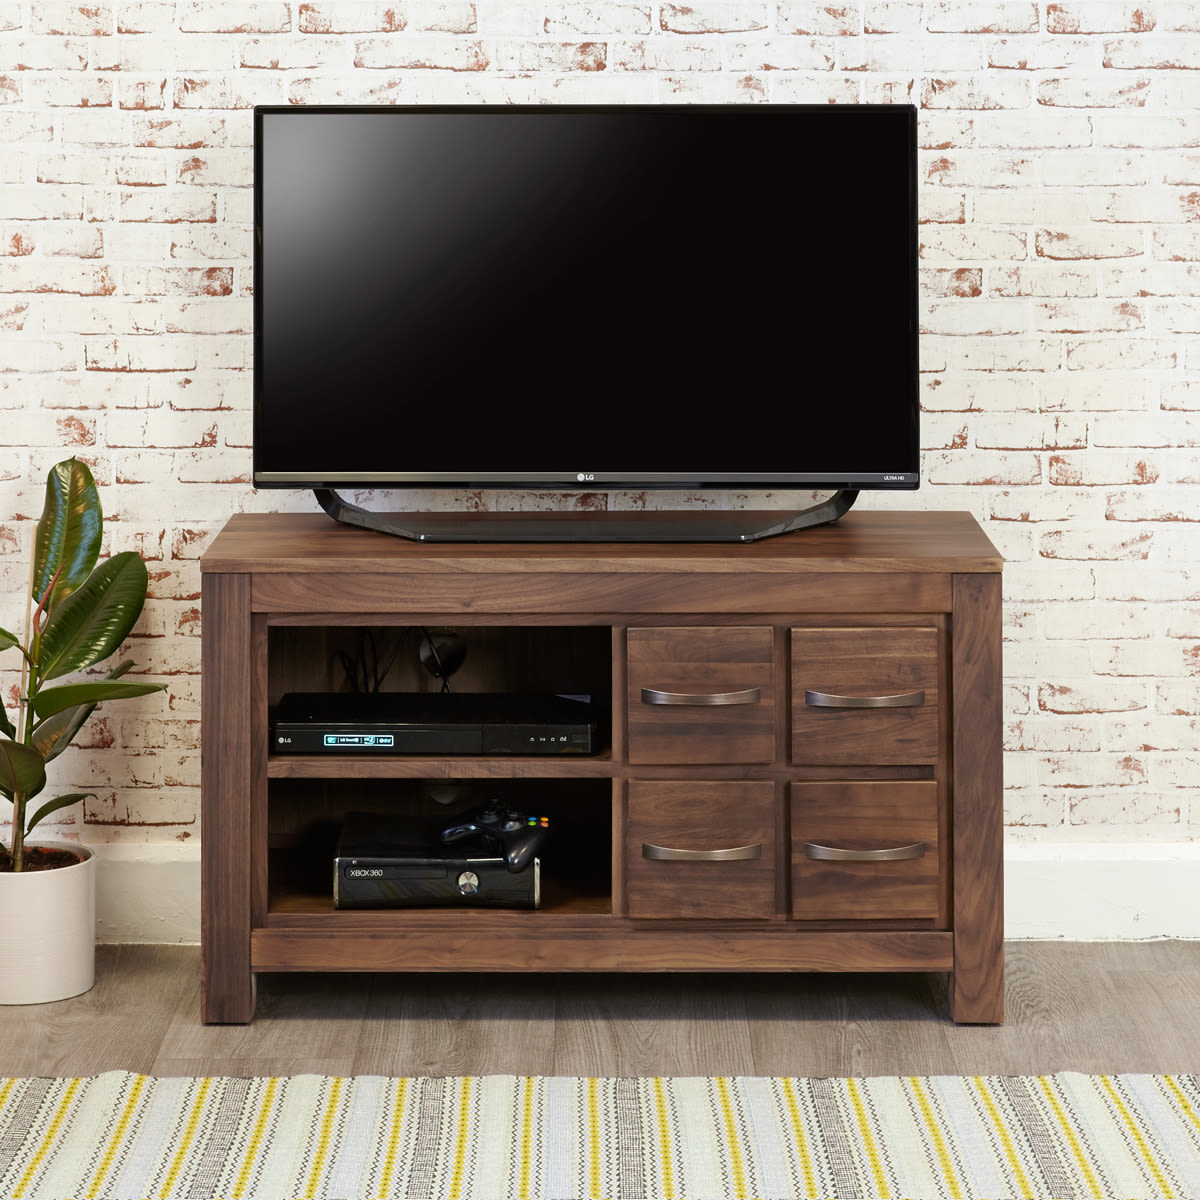 5 tips to help choose the perfect TV cabinet